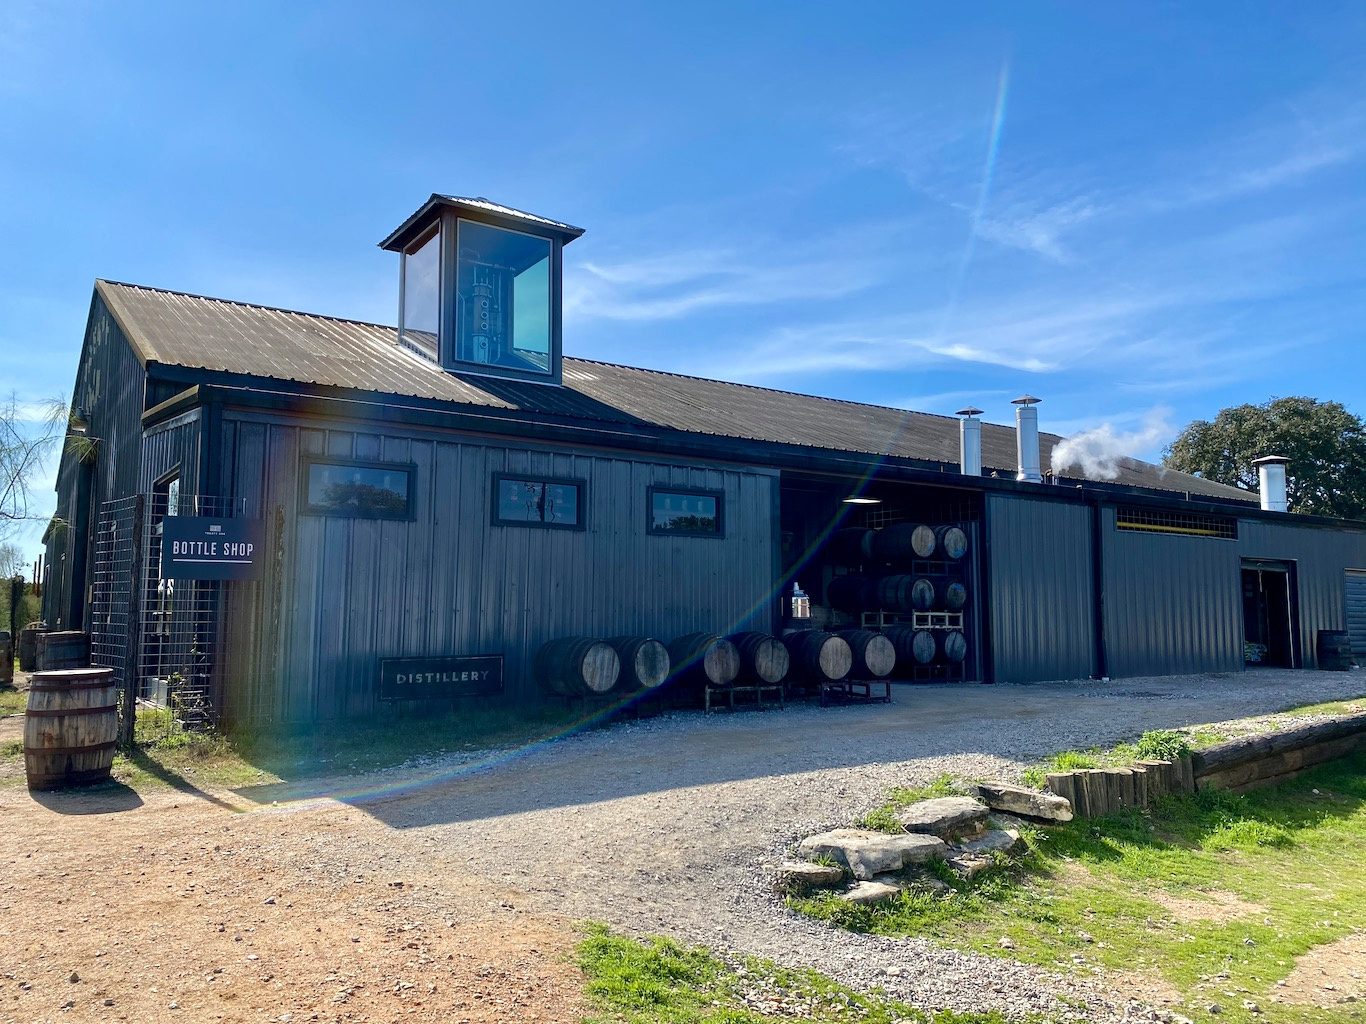 Distillery - Treaty Oak Distilling